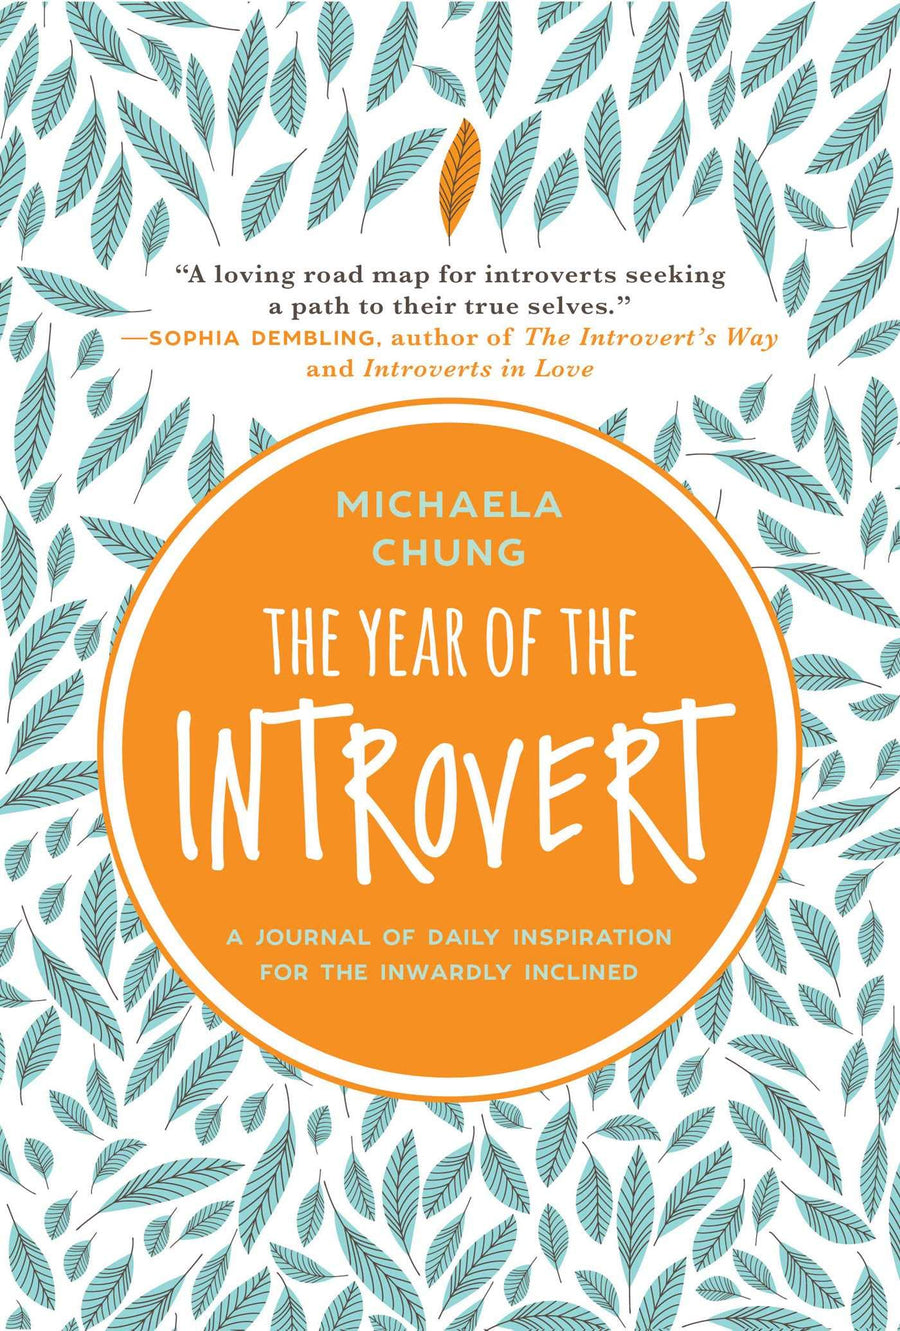 The Year of the Introvert: A Journal of Daily Inspiration for the Inwardly Inclined by Michaela Chung